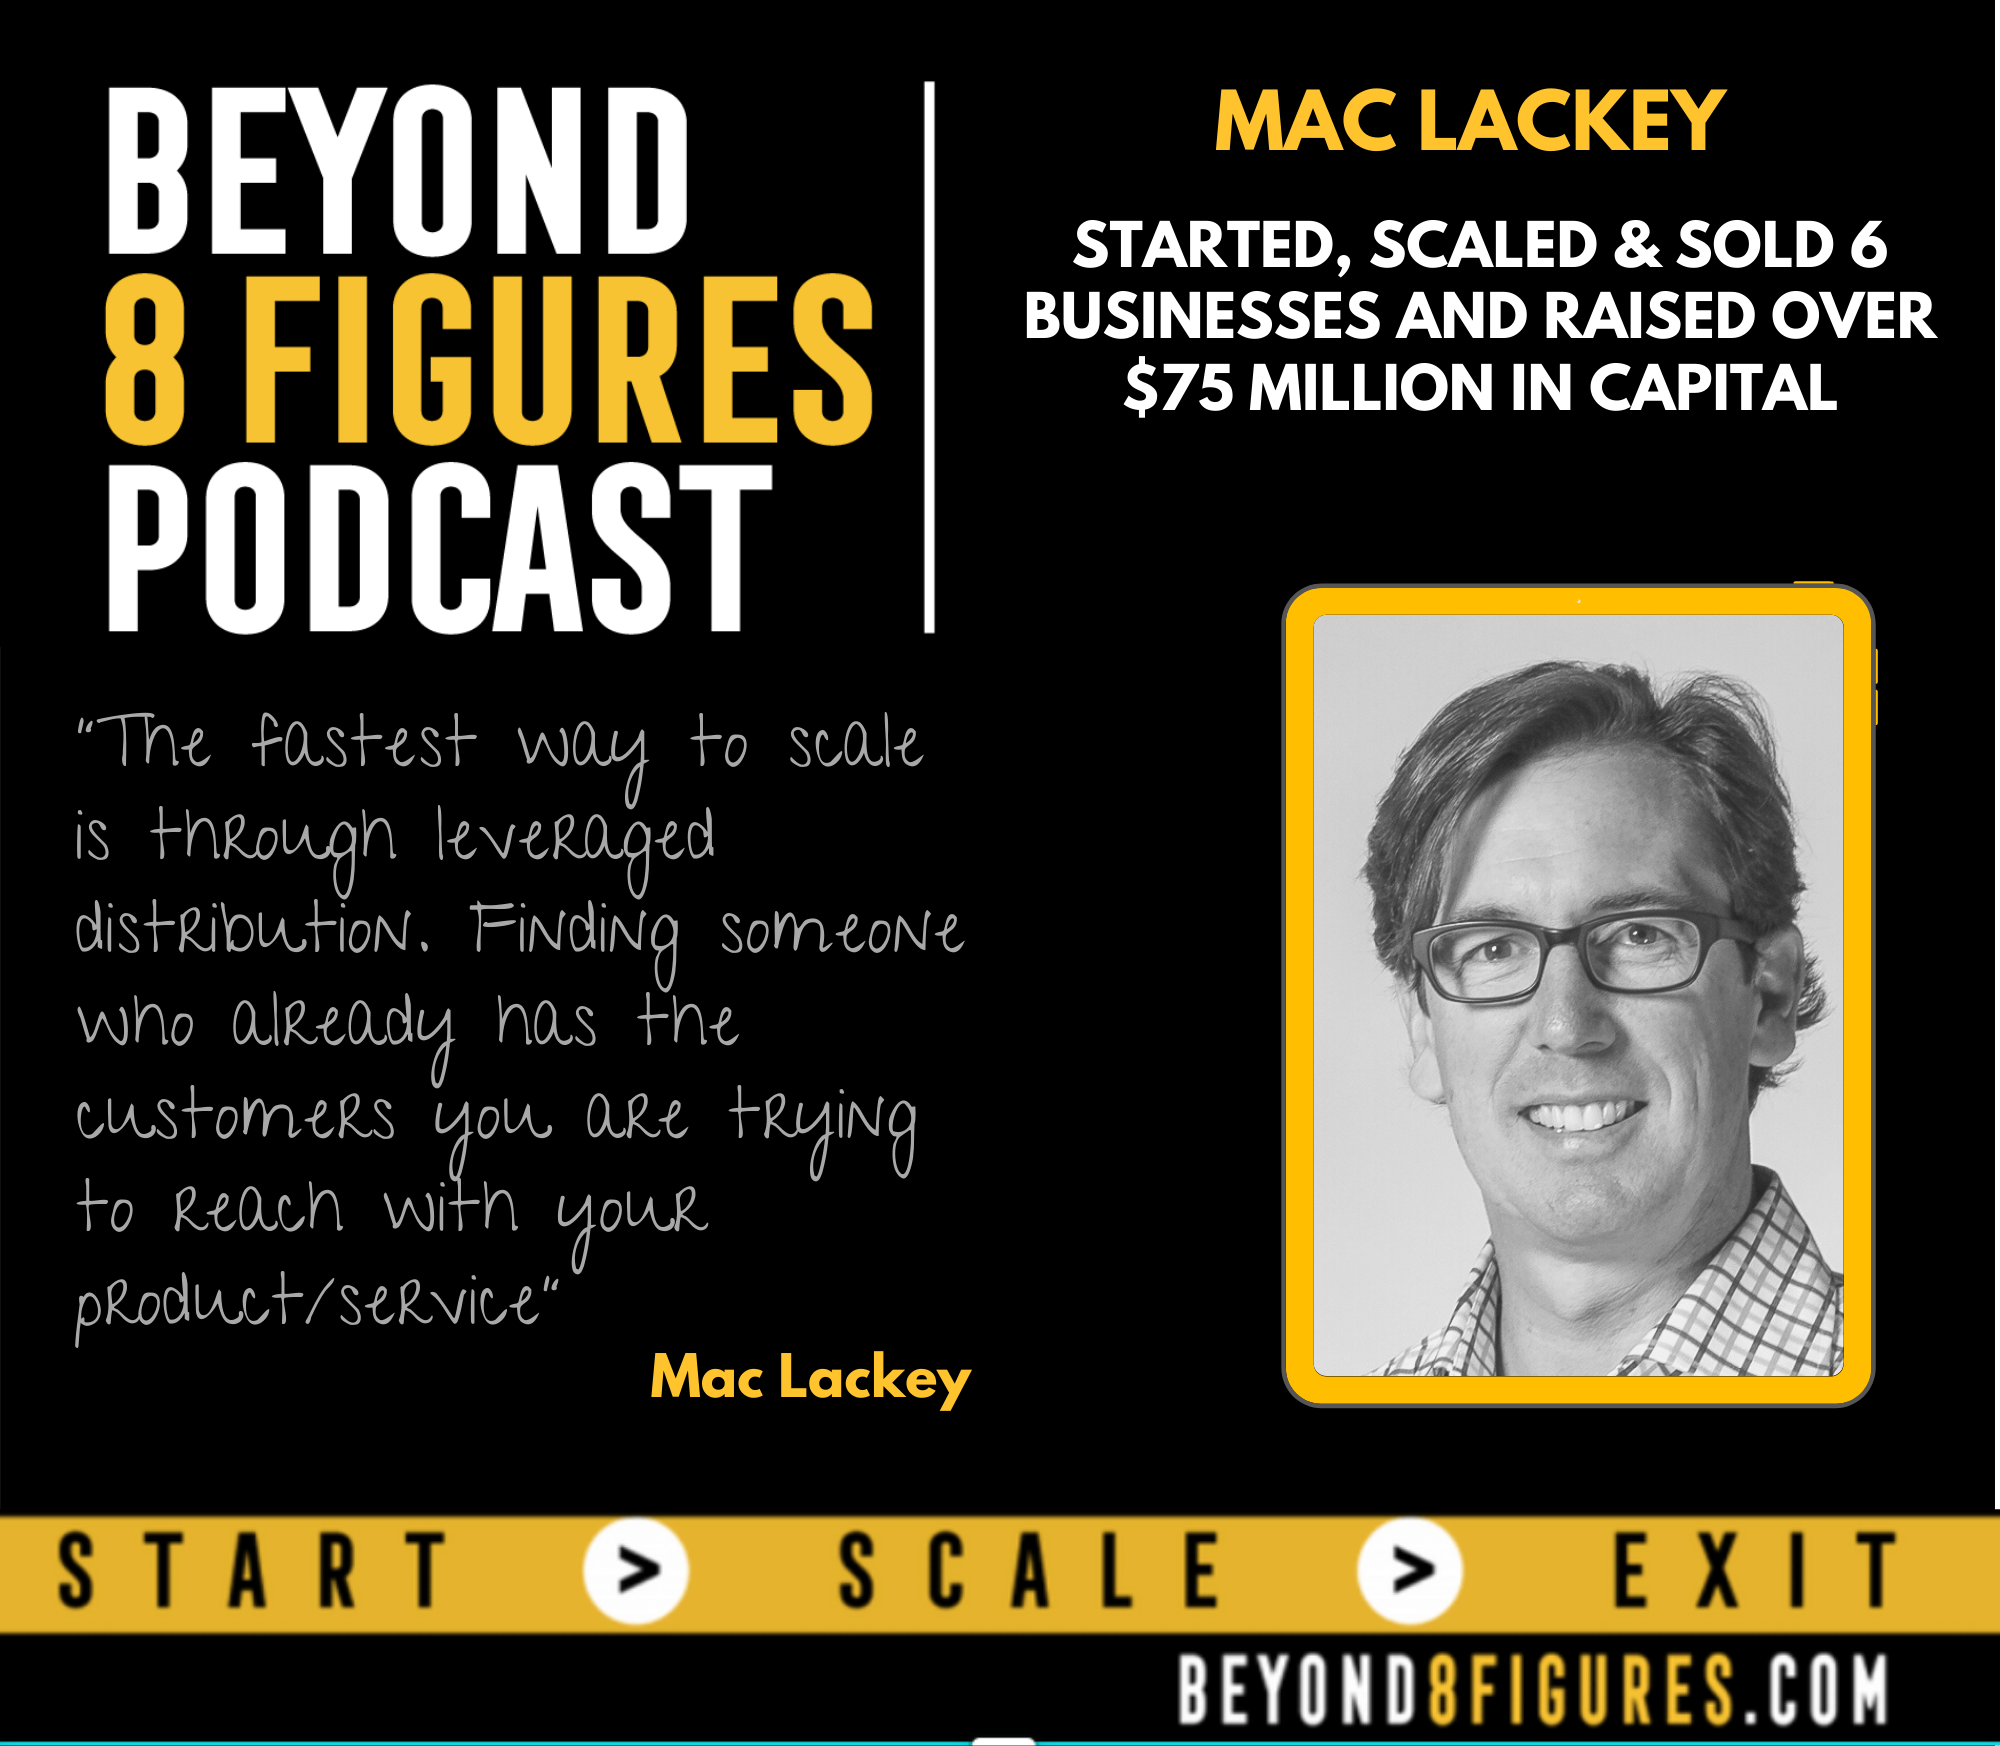 $10M+ | Mac Lackey Started, Scaled & Sold 6 Businesses and Raised Over $75 Million in Capital